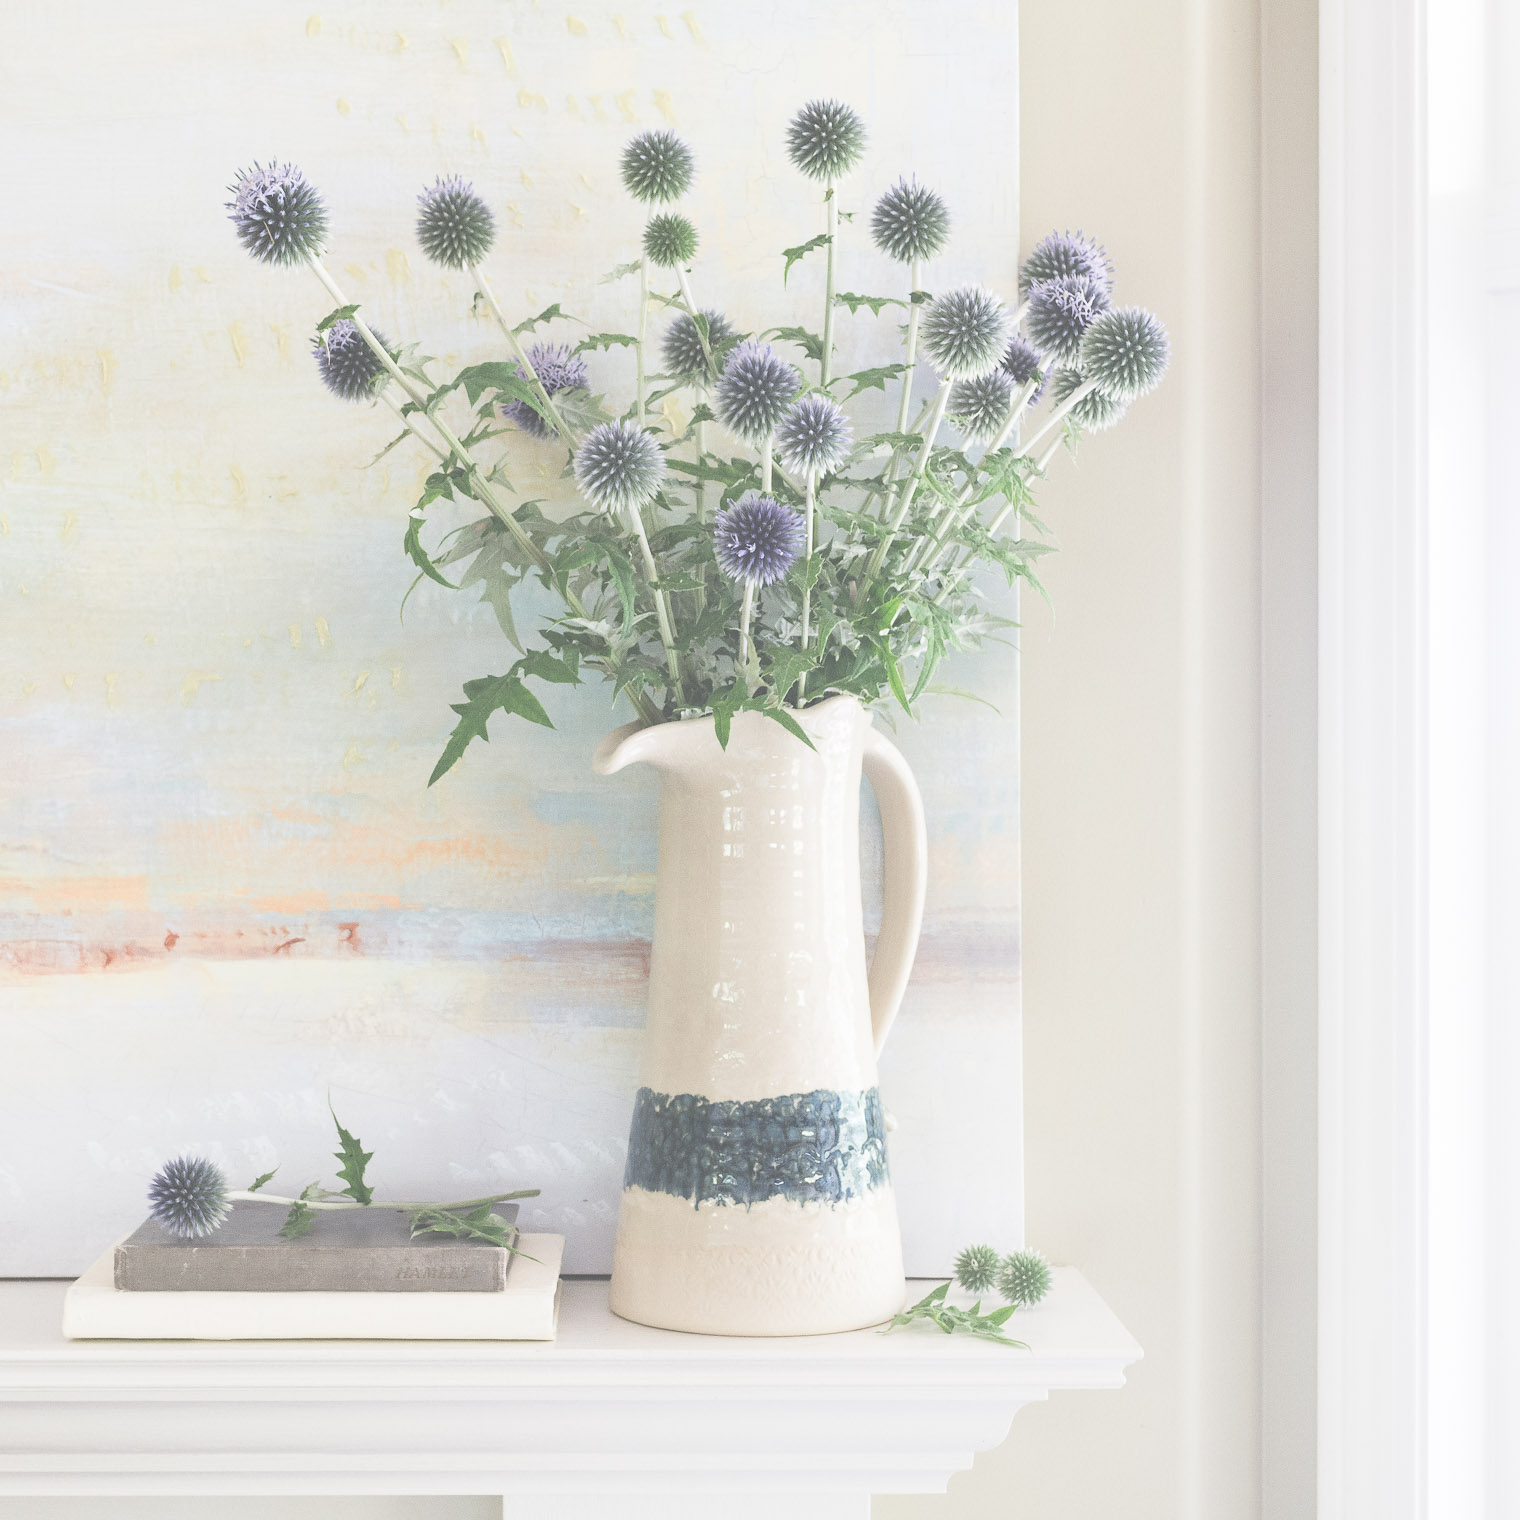 Echinops in a Corner, The Studio Online, Keeping With the Times